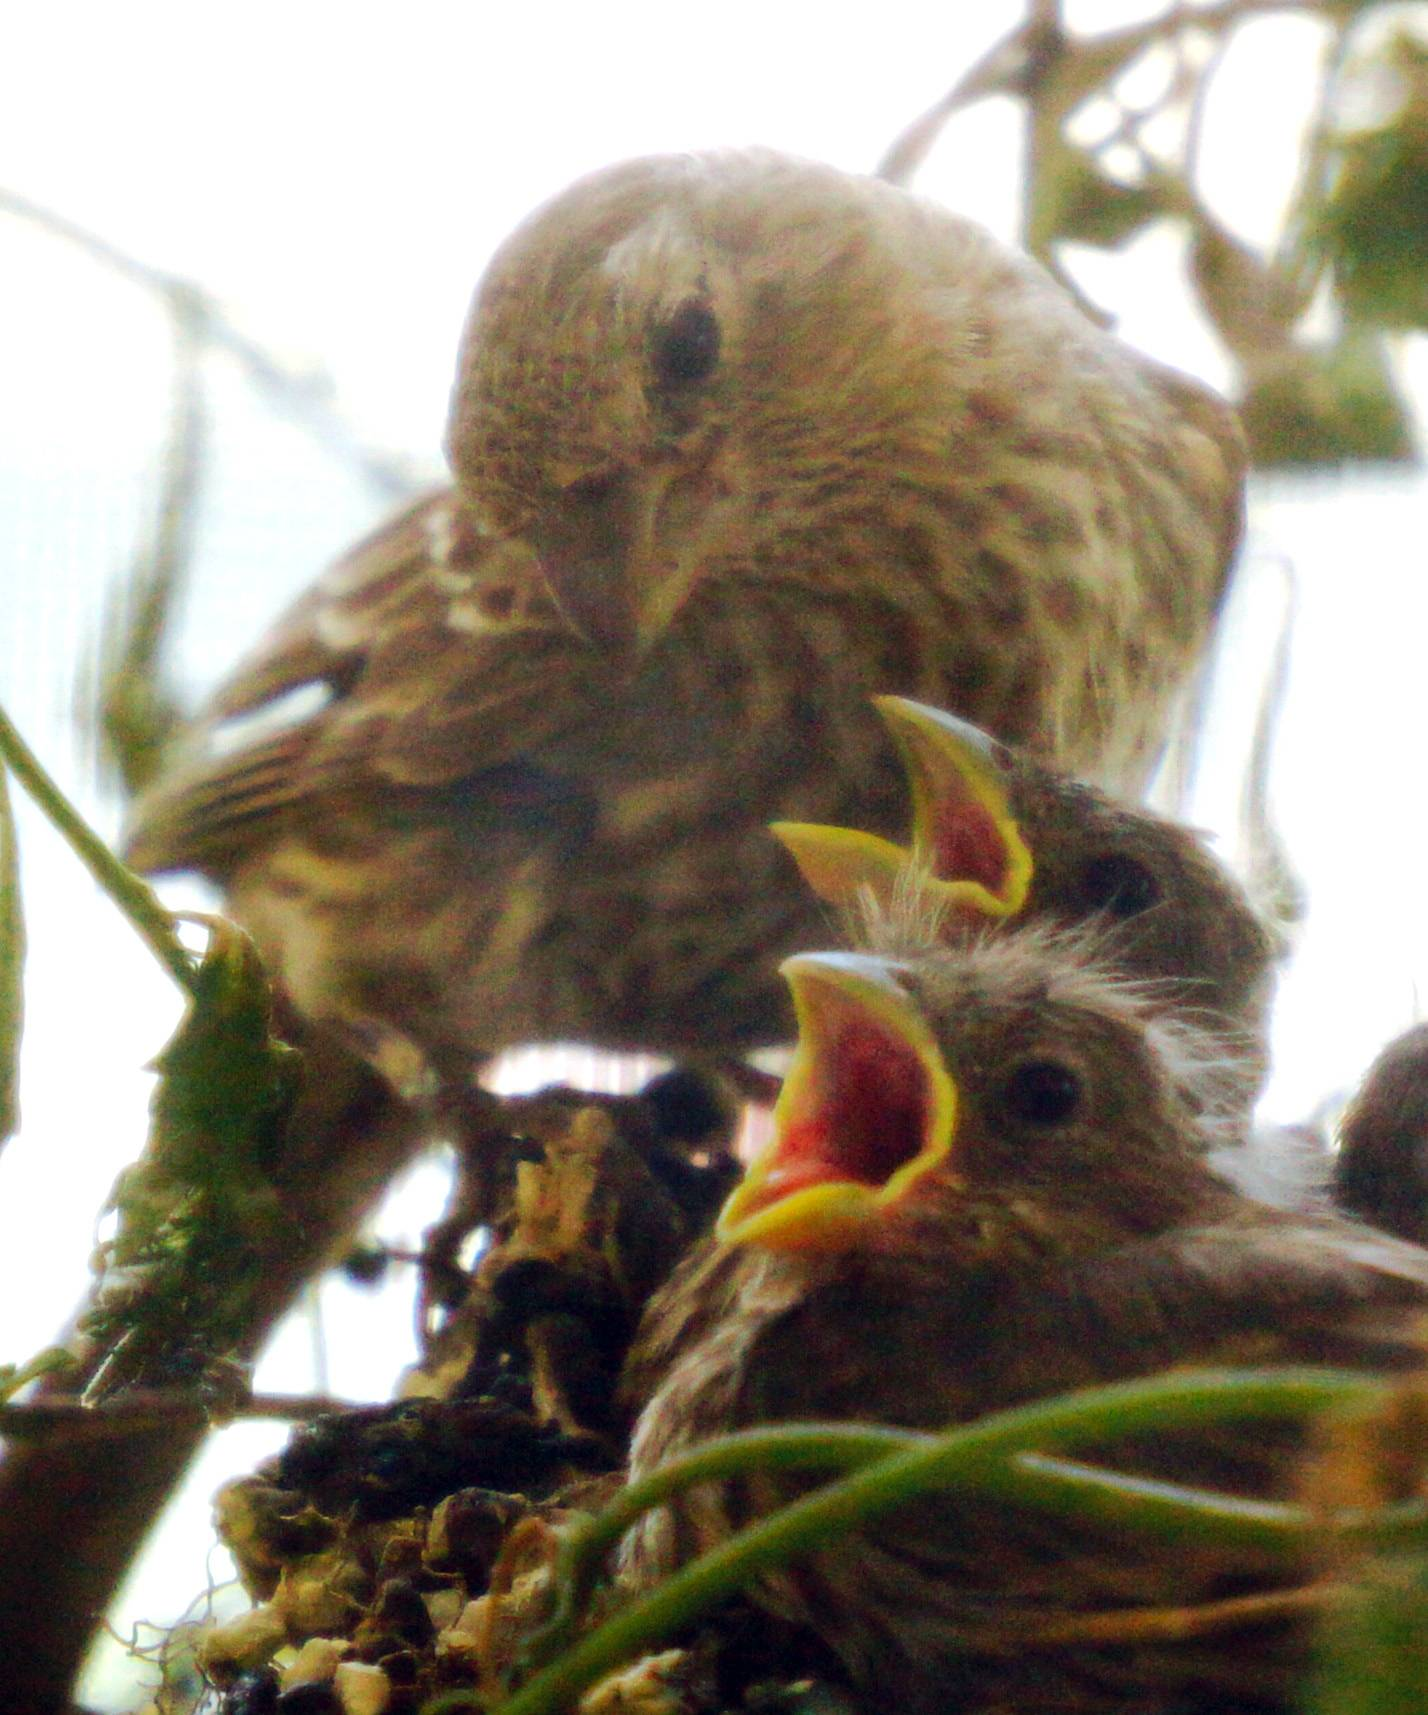 I took this photo of a family of house finches that took up residence in a hanging planter on our front porch this summer. Here the mother feeds her hungry babies.